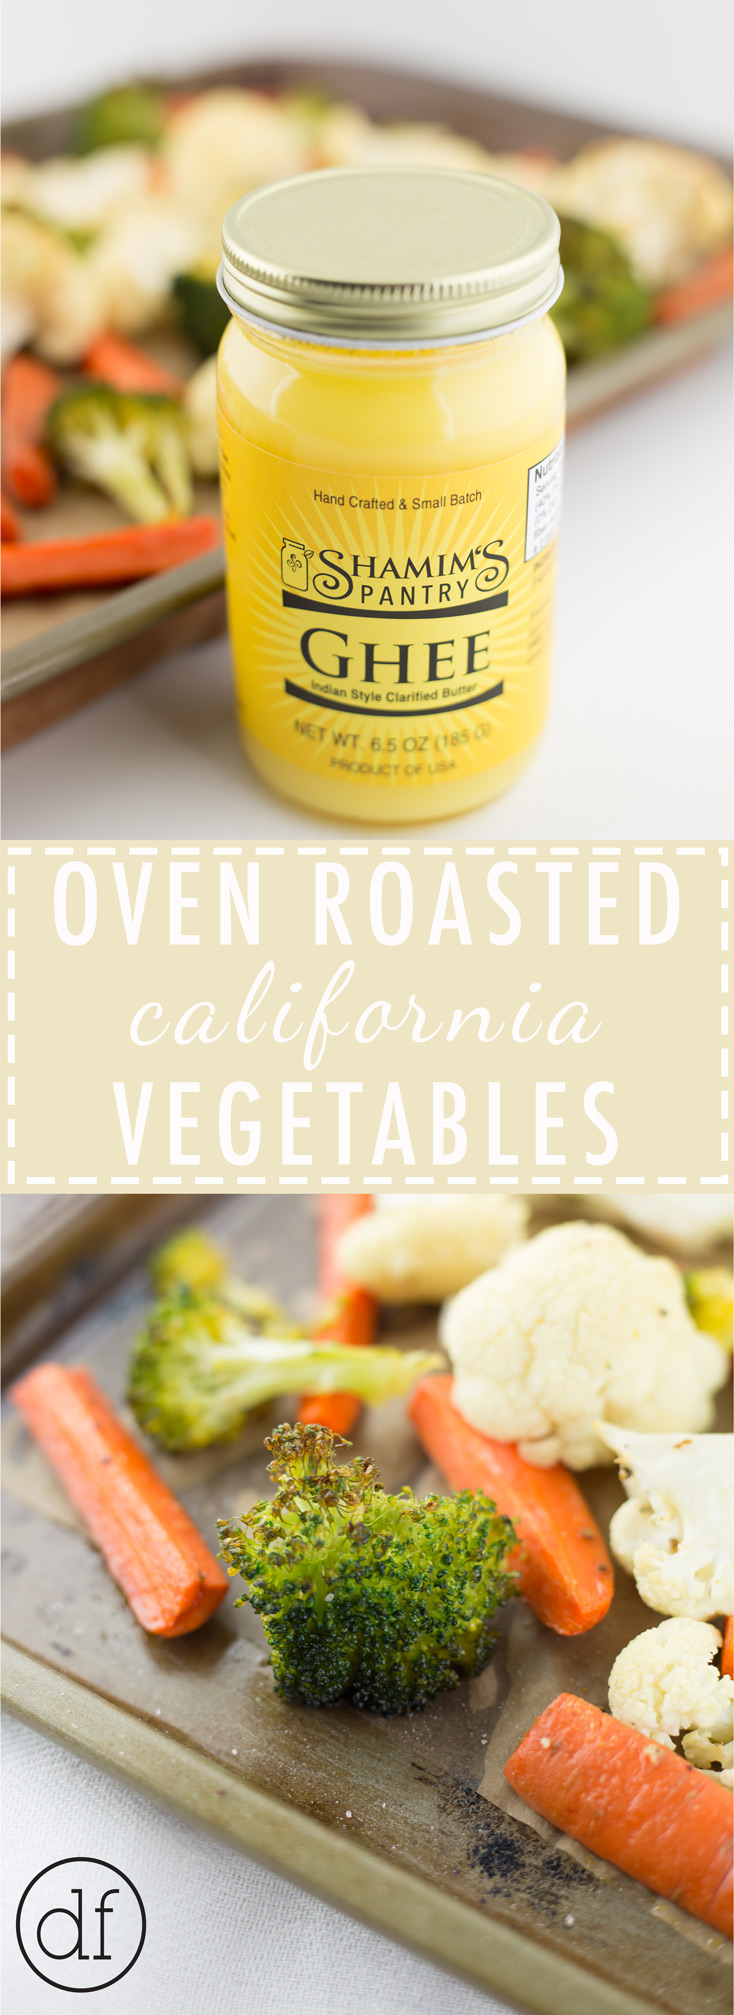 Roasted California Vegetables, Paleo, Recipes, Simple, Weeknight, Benefits of Ghee, Ghee, Clarified Butter, Oven Roasted, Whole30, 21 Day Sugar Detox, 21DSD, Health Coach